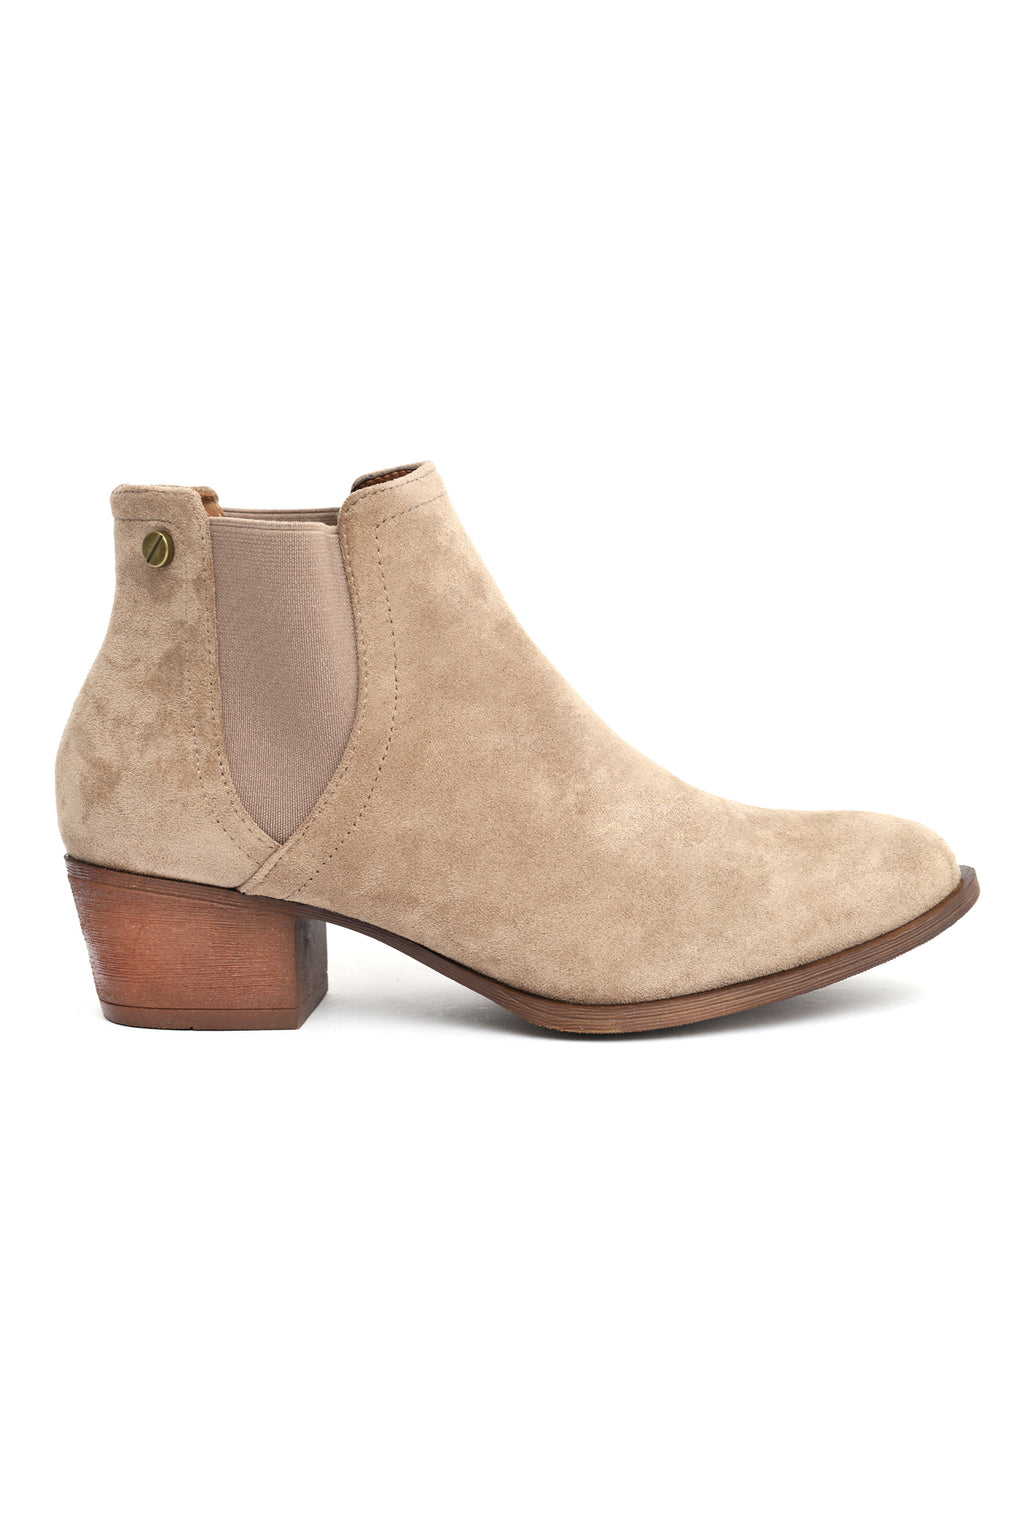 SALLY BOOTS-BEIGE